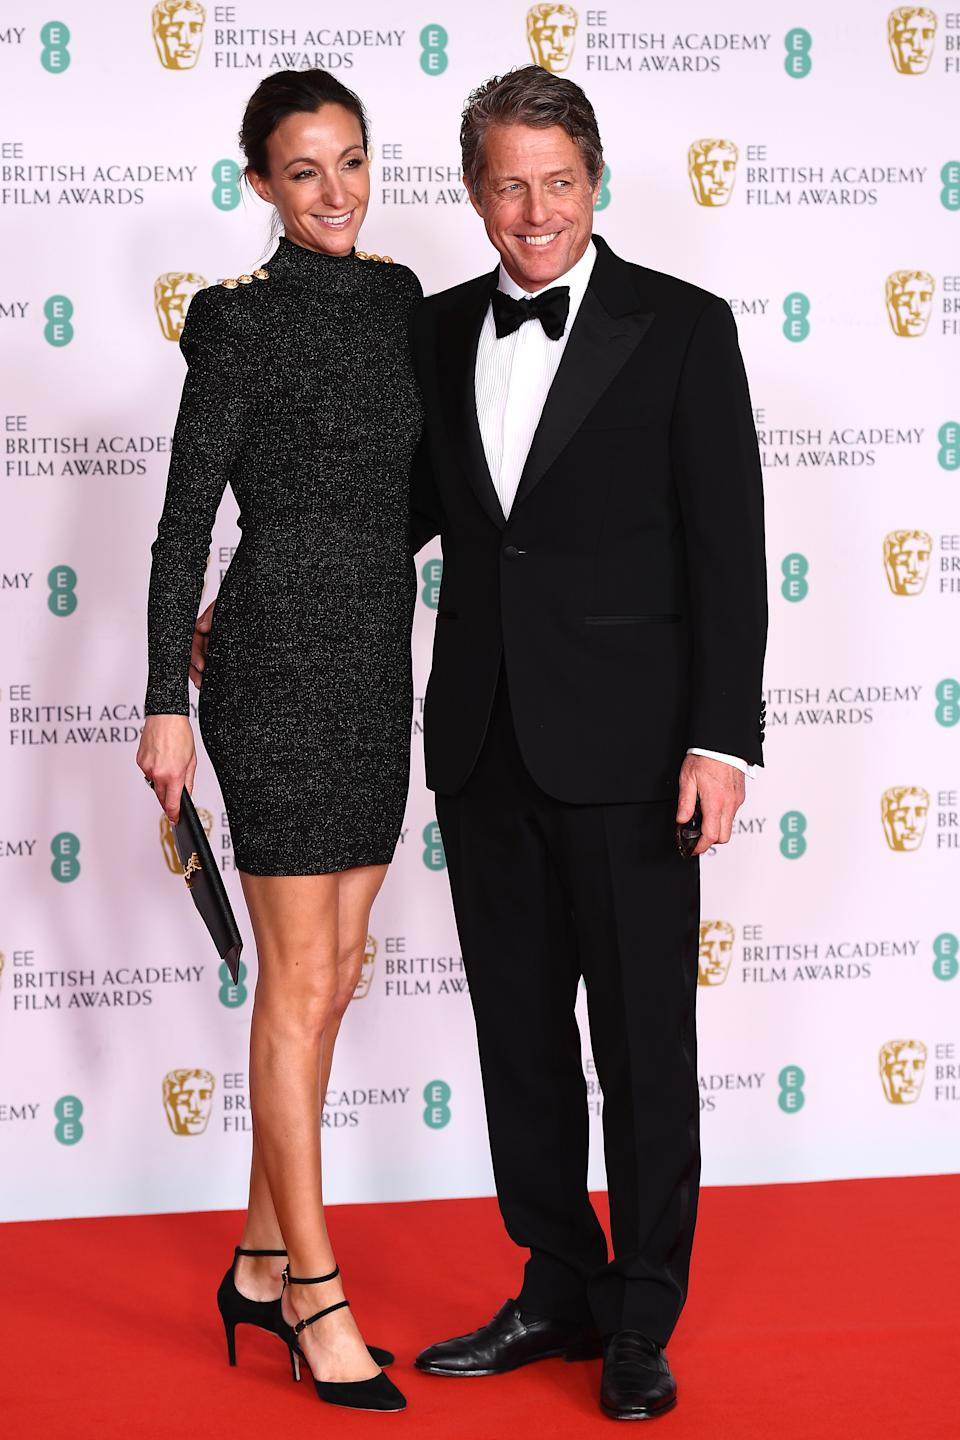 LONDON, ENGLAND - APRIL 11: Awards Presenter Hugh Grant and wife Anna Elisabet Eberstein attends the EE British Academy Film Awards 2021 at the Royal Albert Hall on April 11, 2021 in London, England. (Photo by Jeff Spicer/Getty Images)